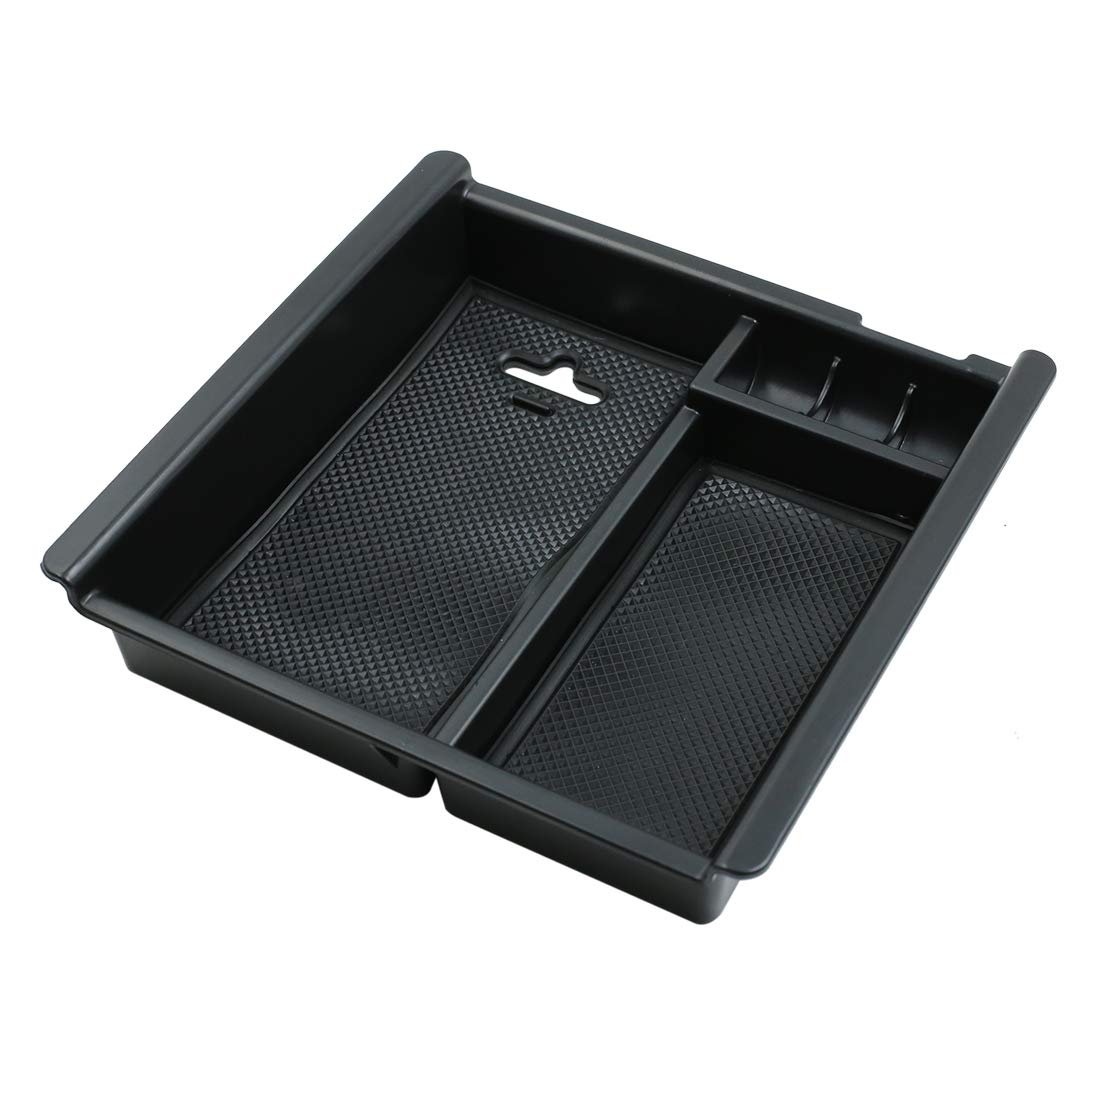 X AUTOHAUX Car Center Console Organizer Armrest Storage Insert Tray for 09-18 Dodge Ram 1500